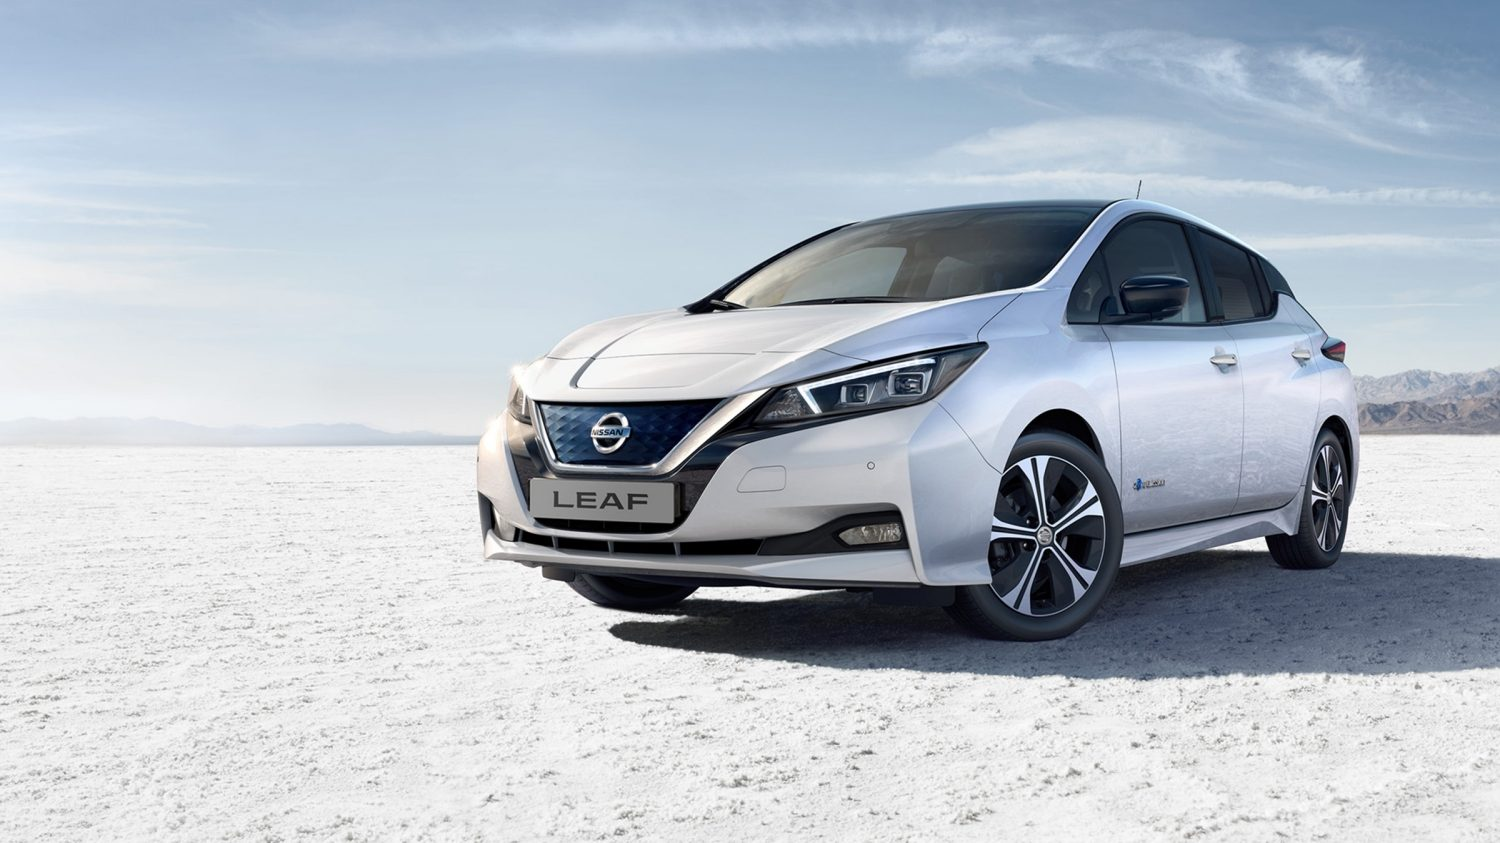 Nissan LEAF | Electric car in use